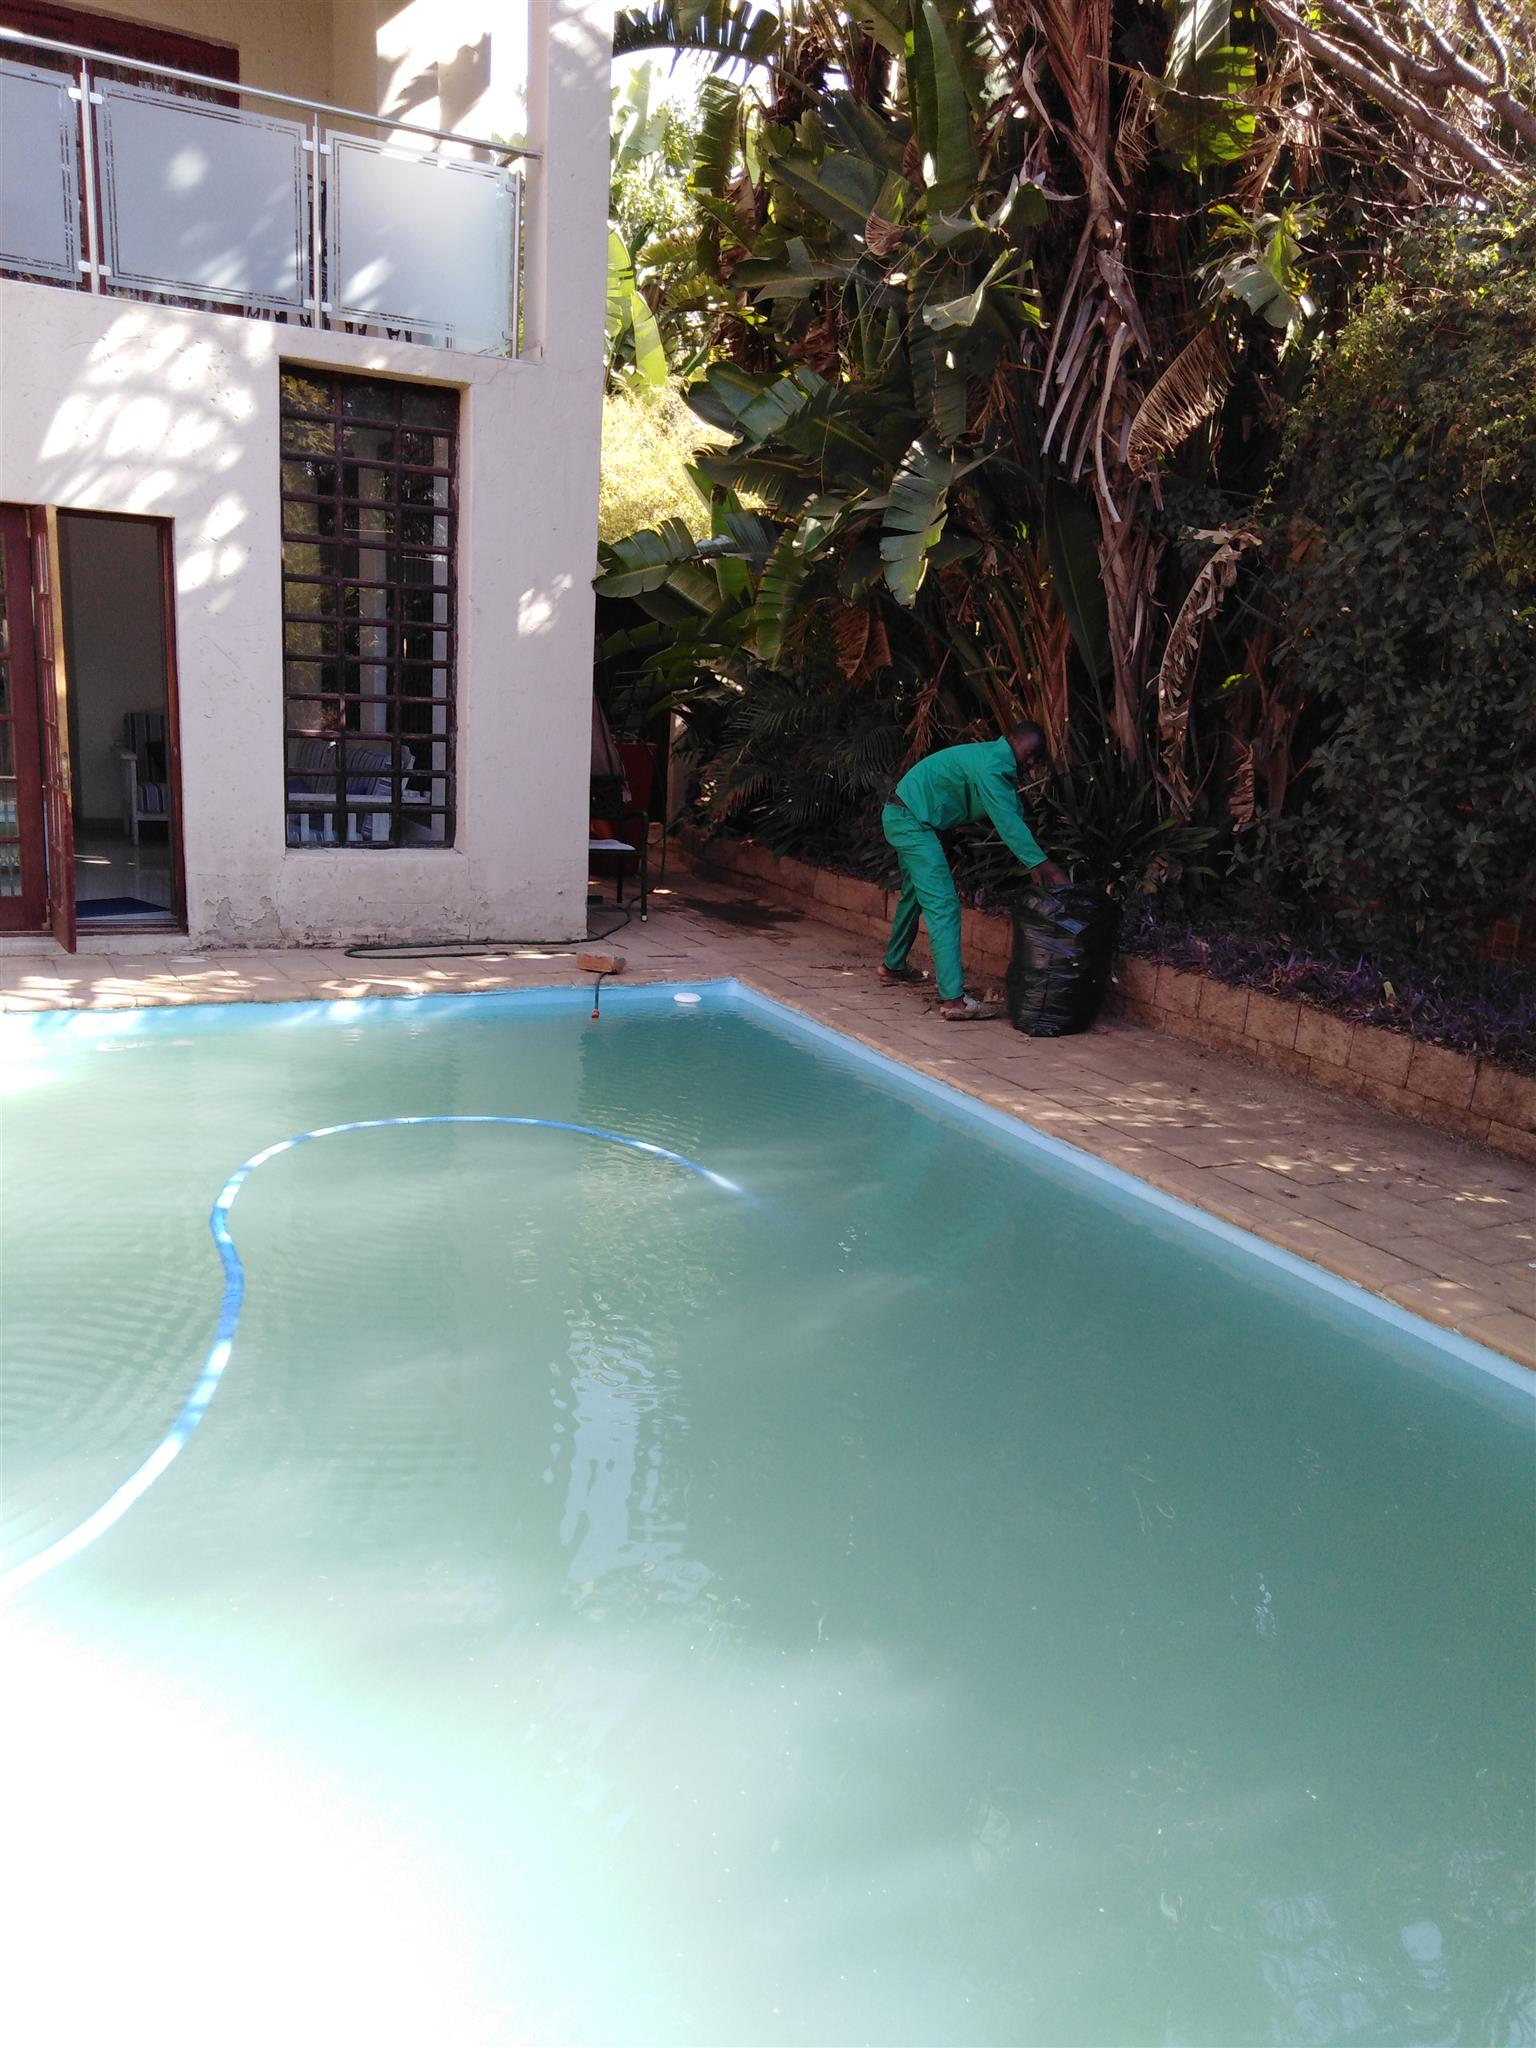 Pool repairs and Cleaning Services